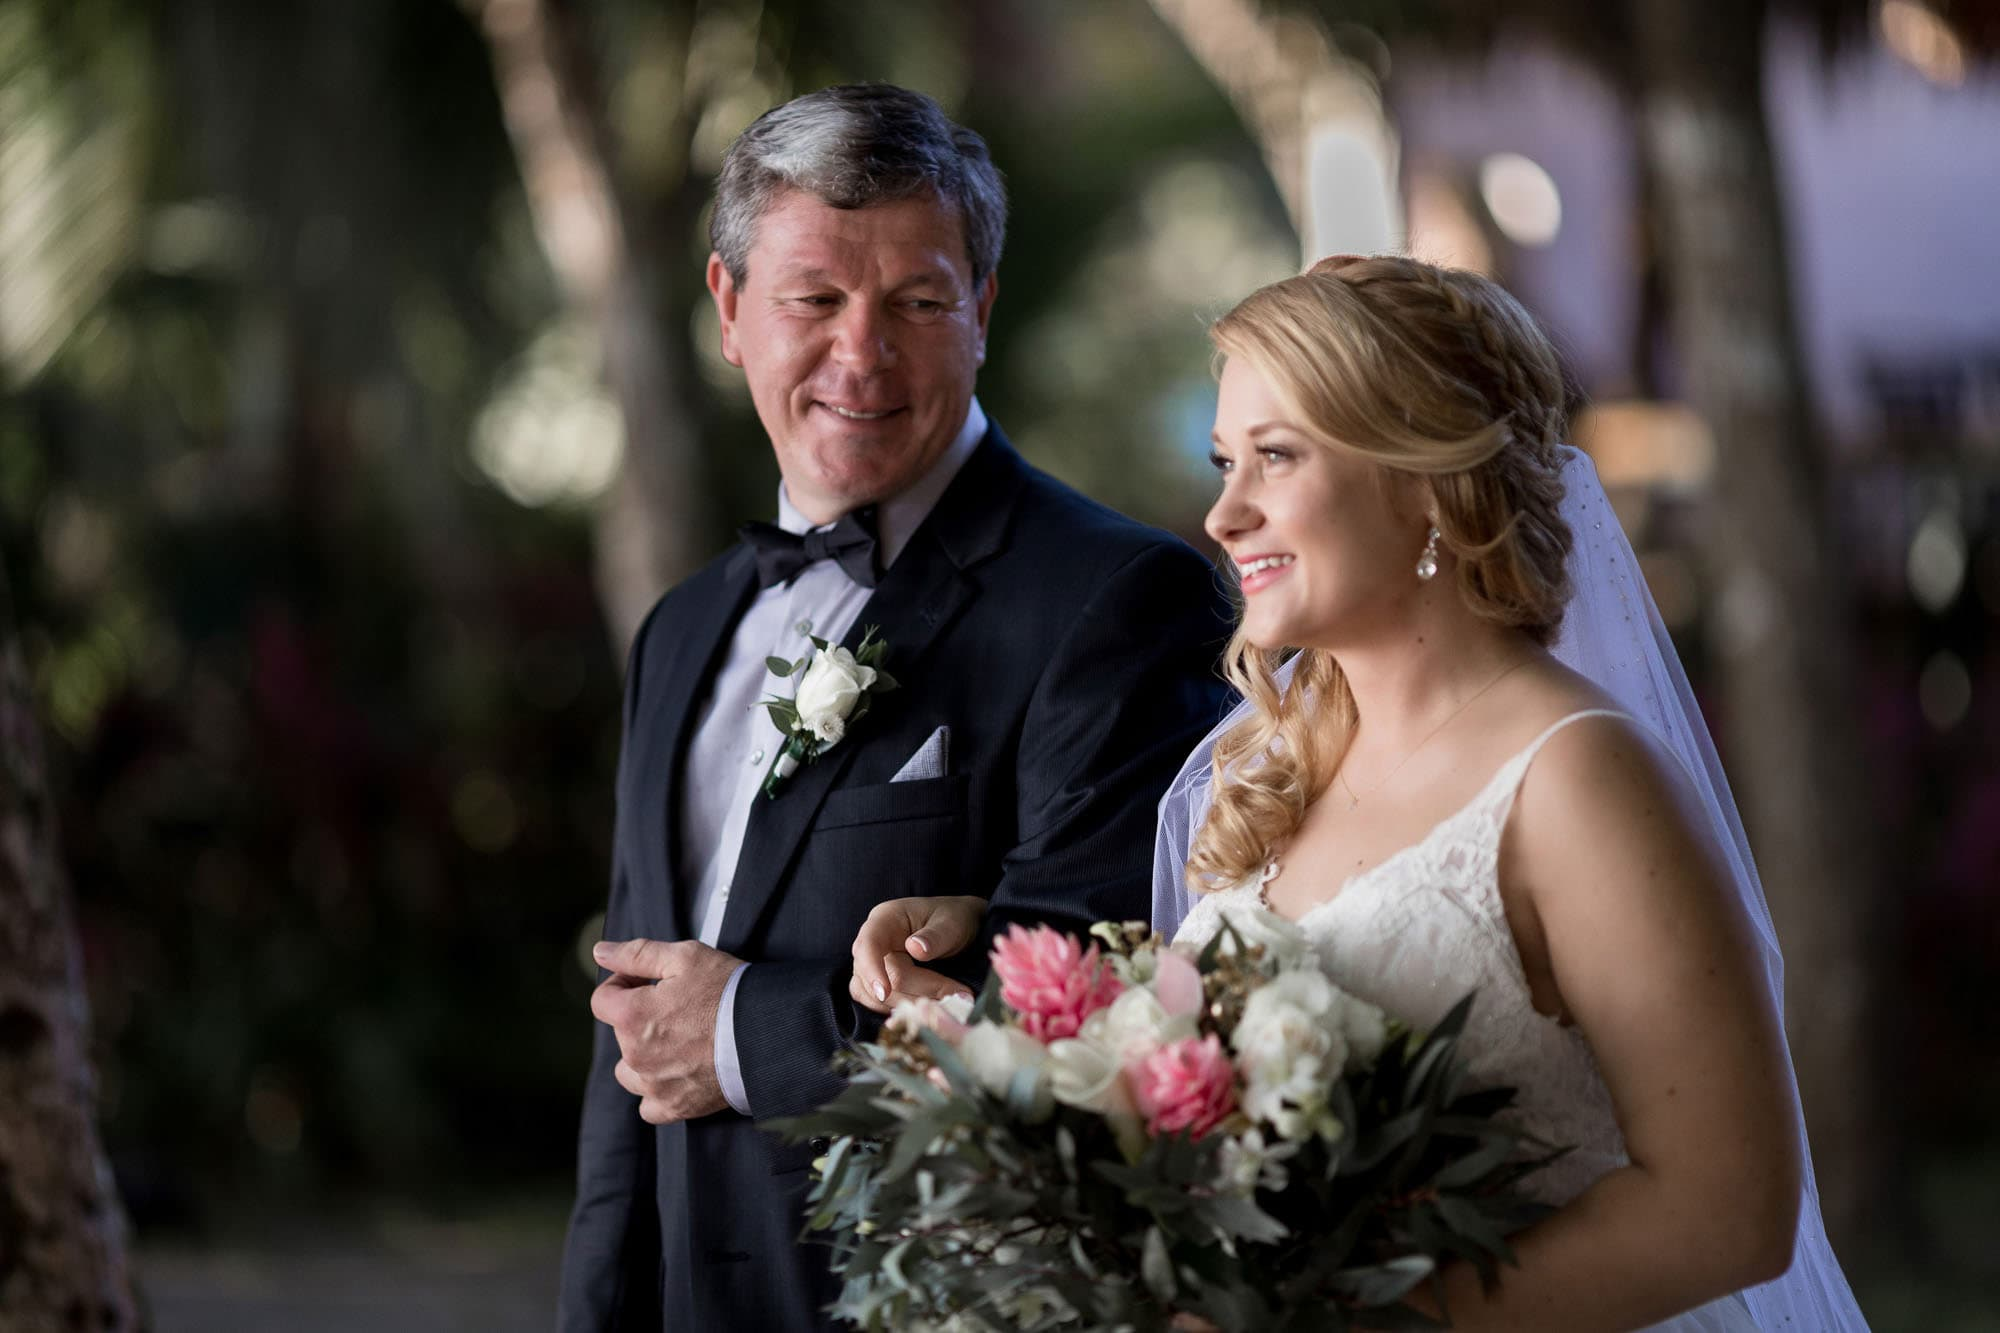 The look of love on the father of the bride's face as he walks her down the aisle.